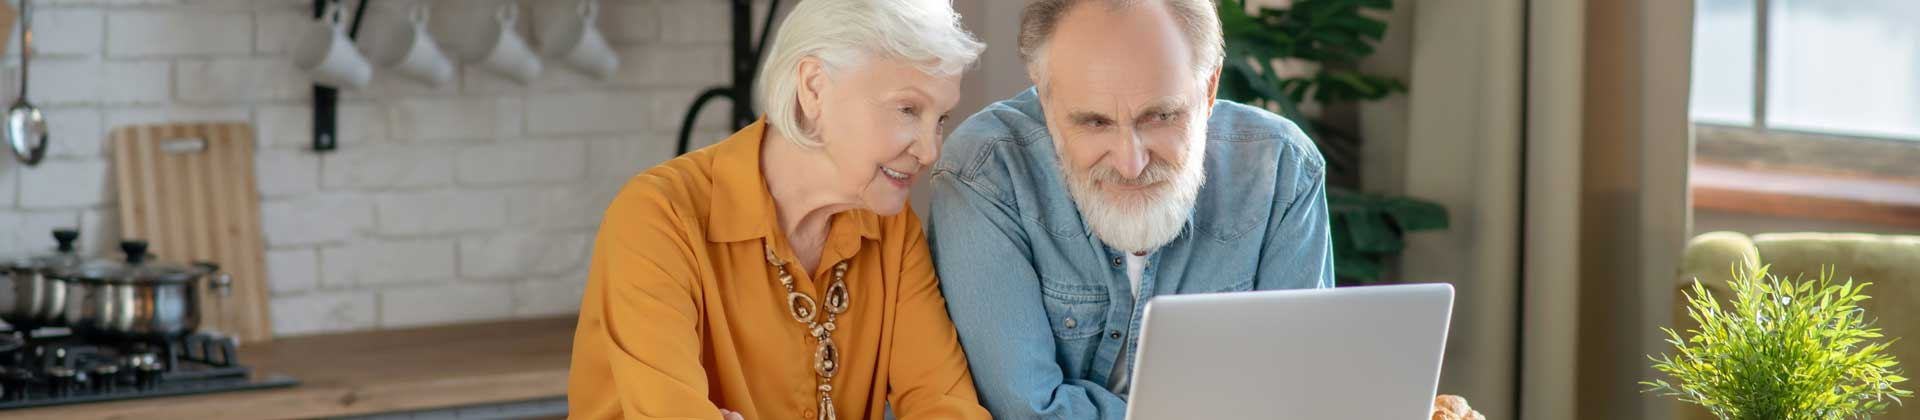 A senior couple looking at a laptop